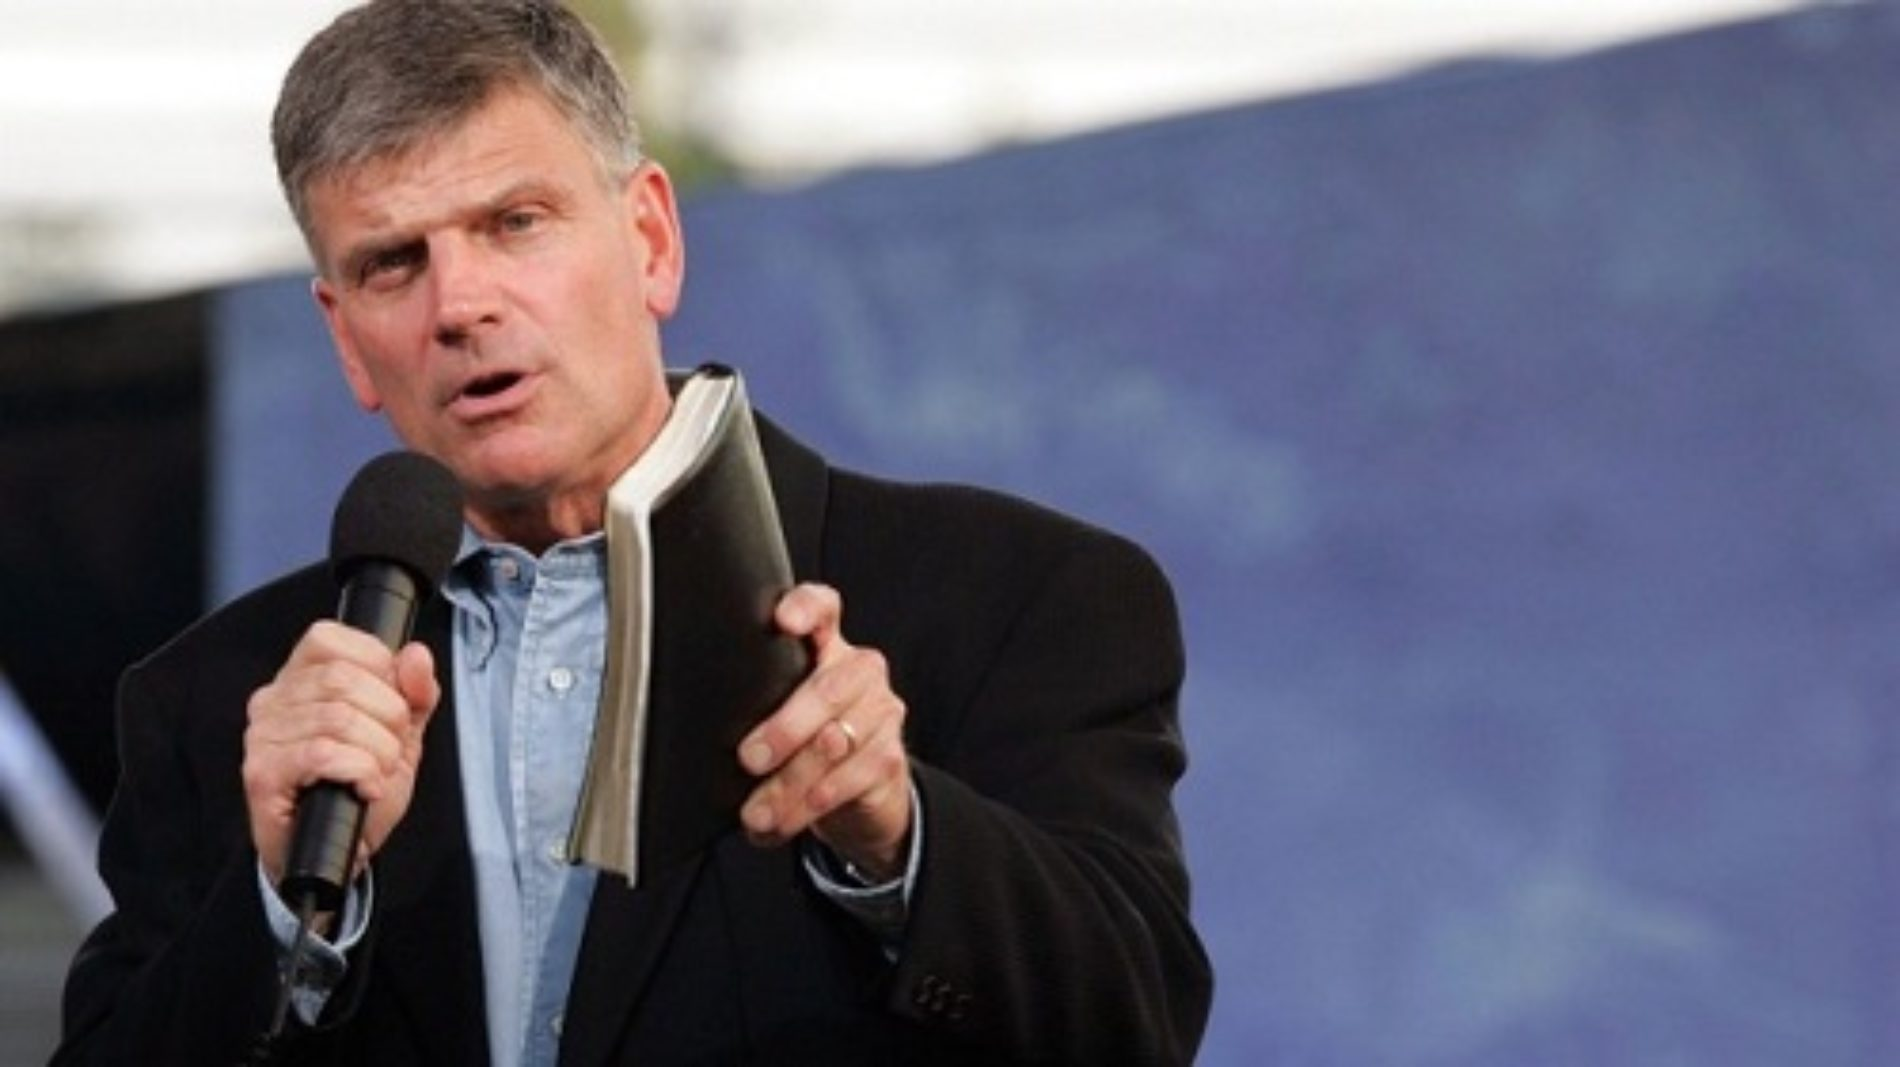 """Rev. Franklin Graham Denounces Gay Christians As """"The Enemy"""" In Radio Interview"""